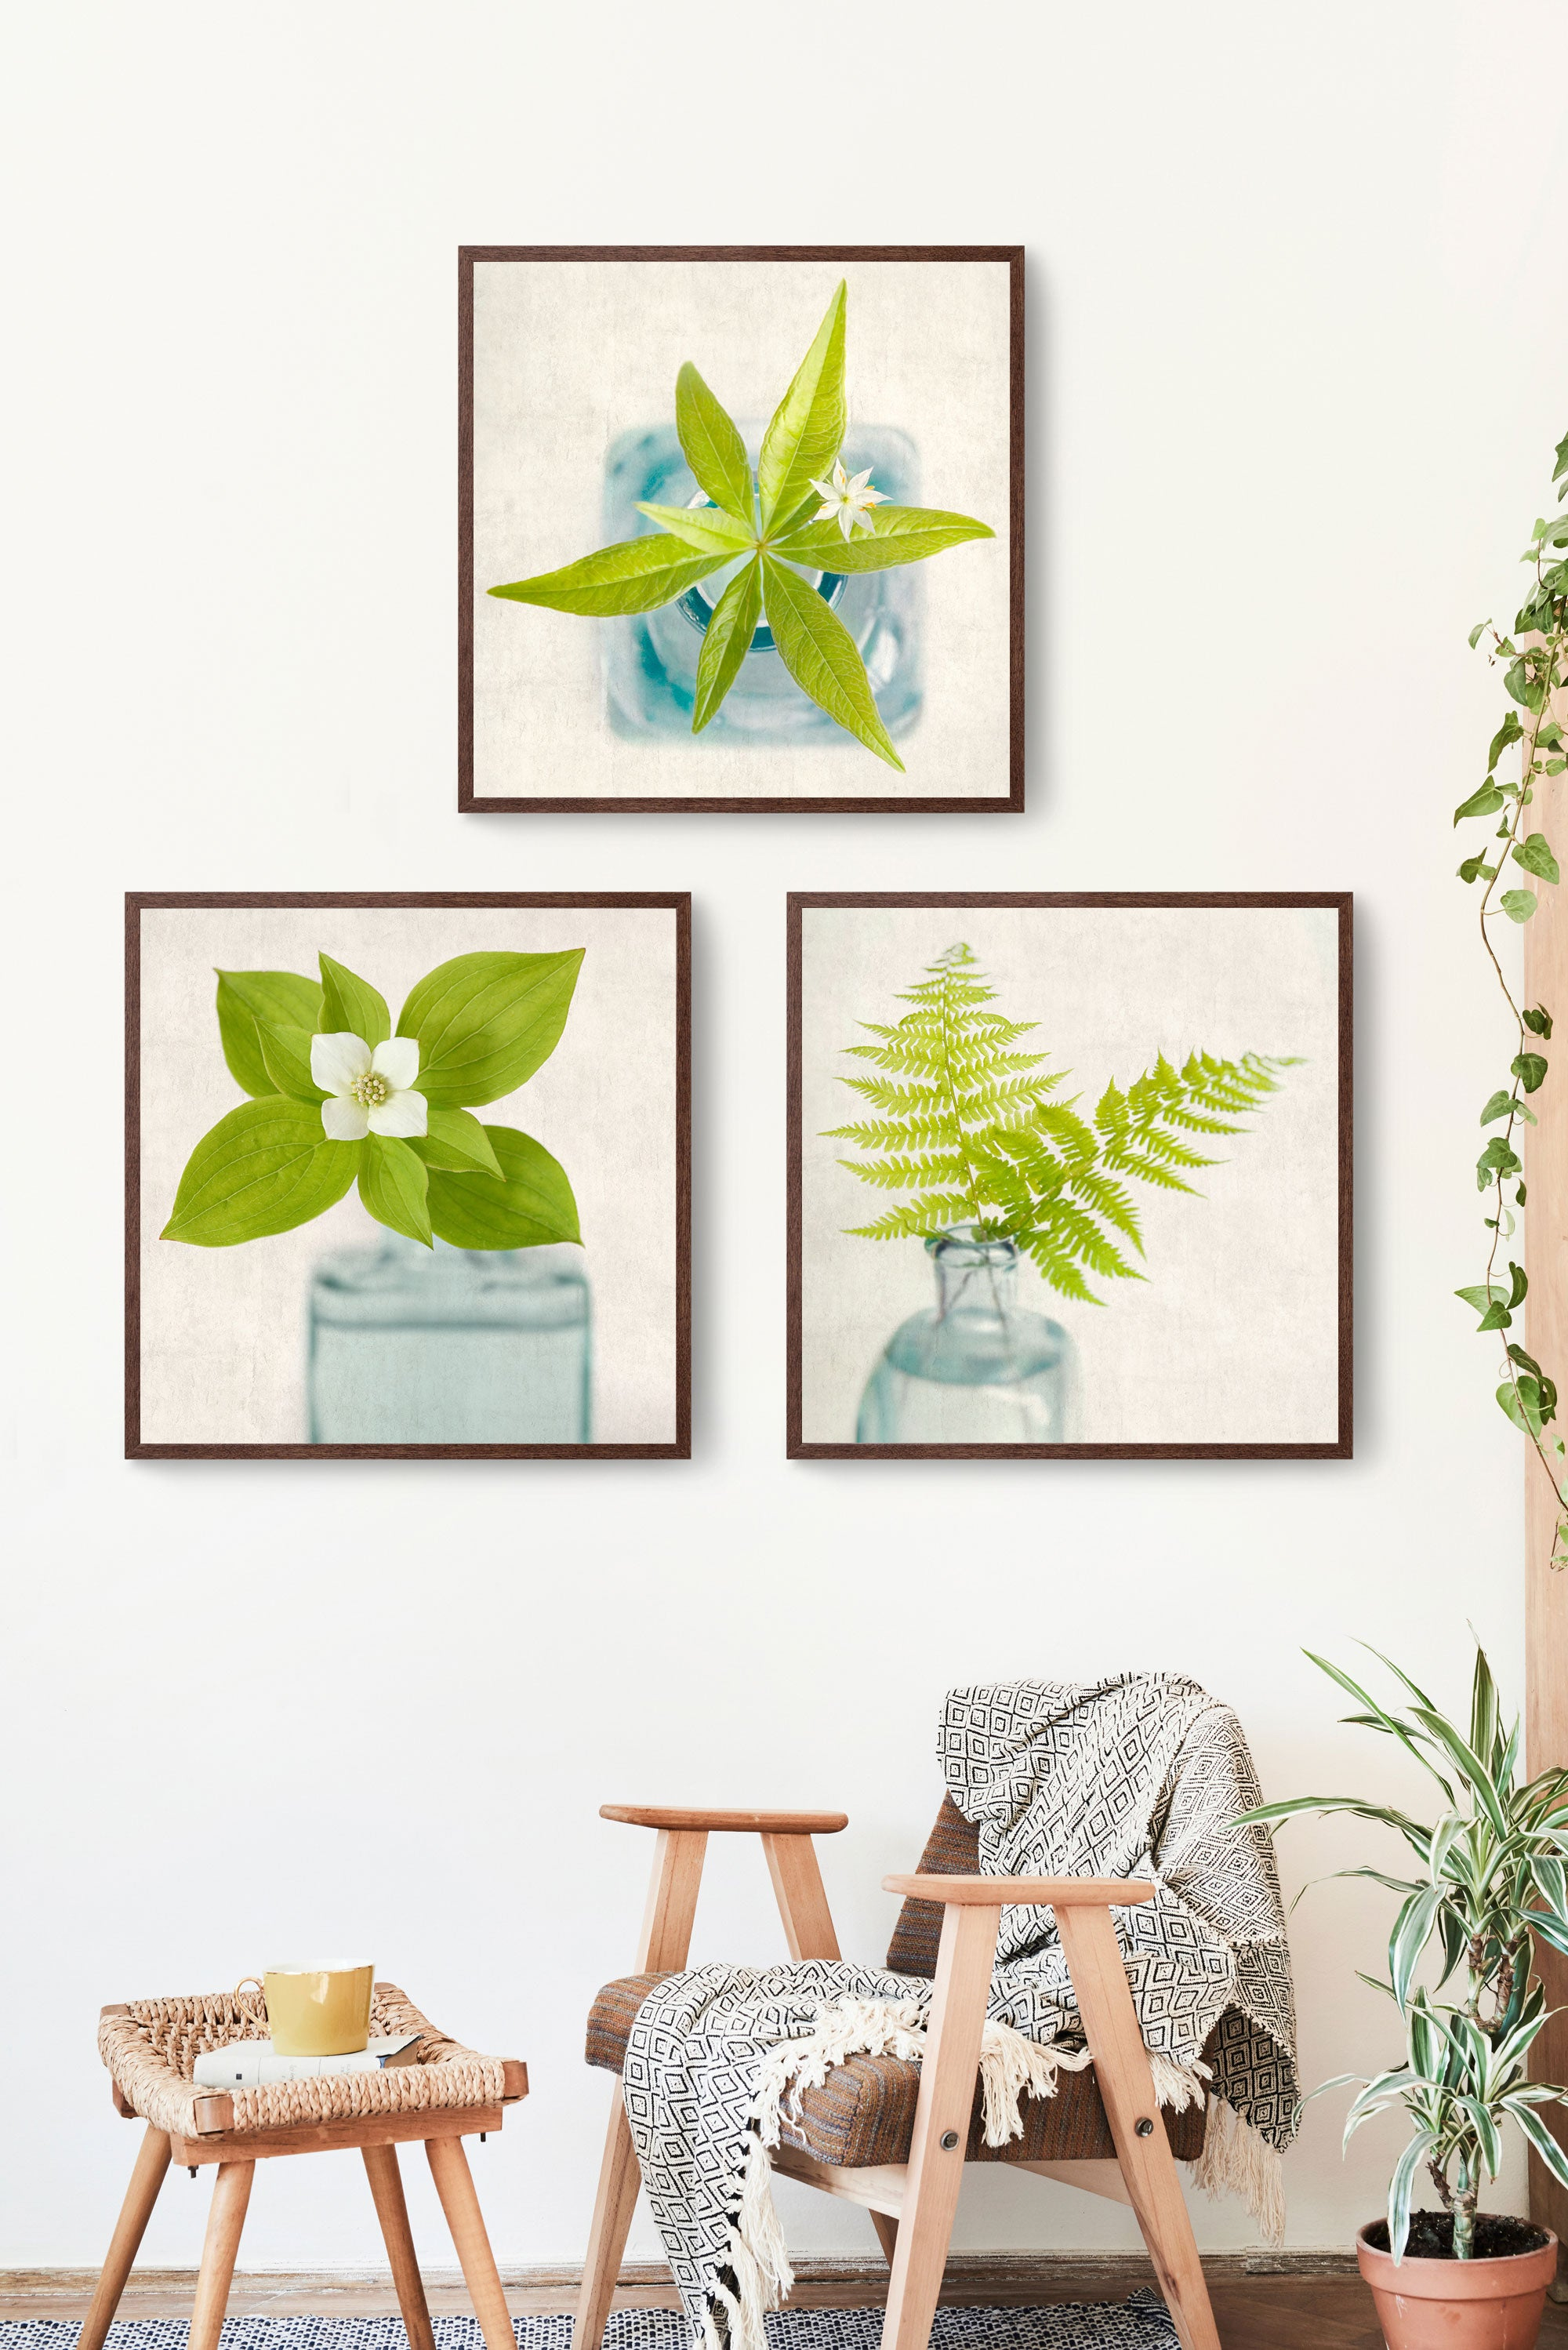 set of 3 prints of green flowers and ferns